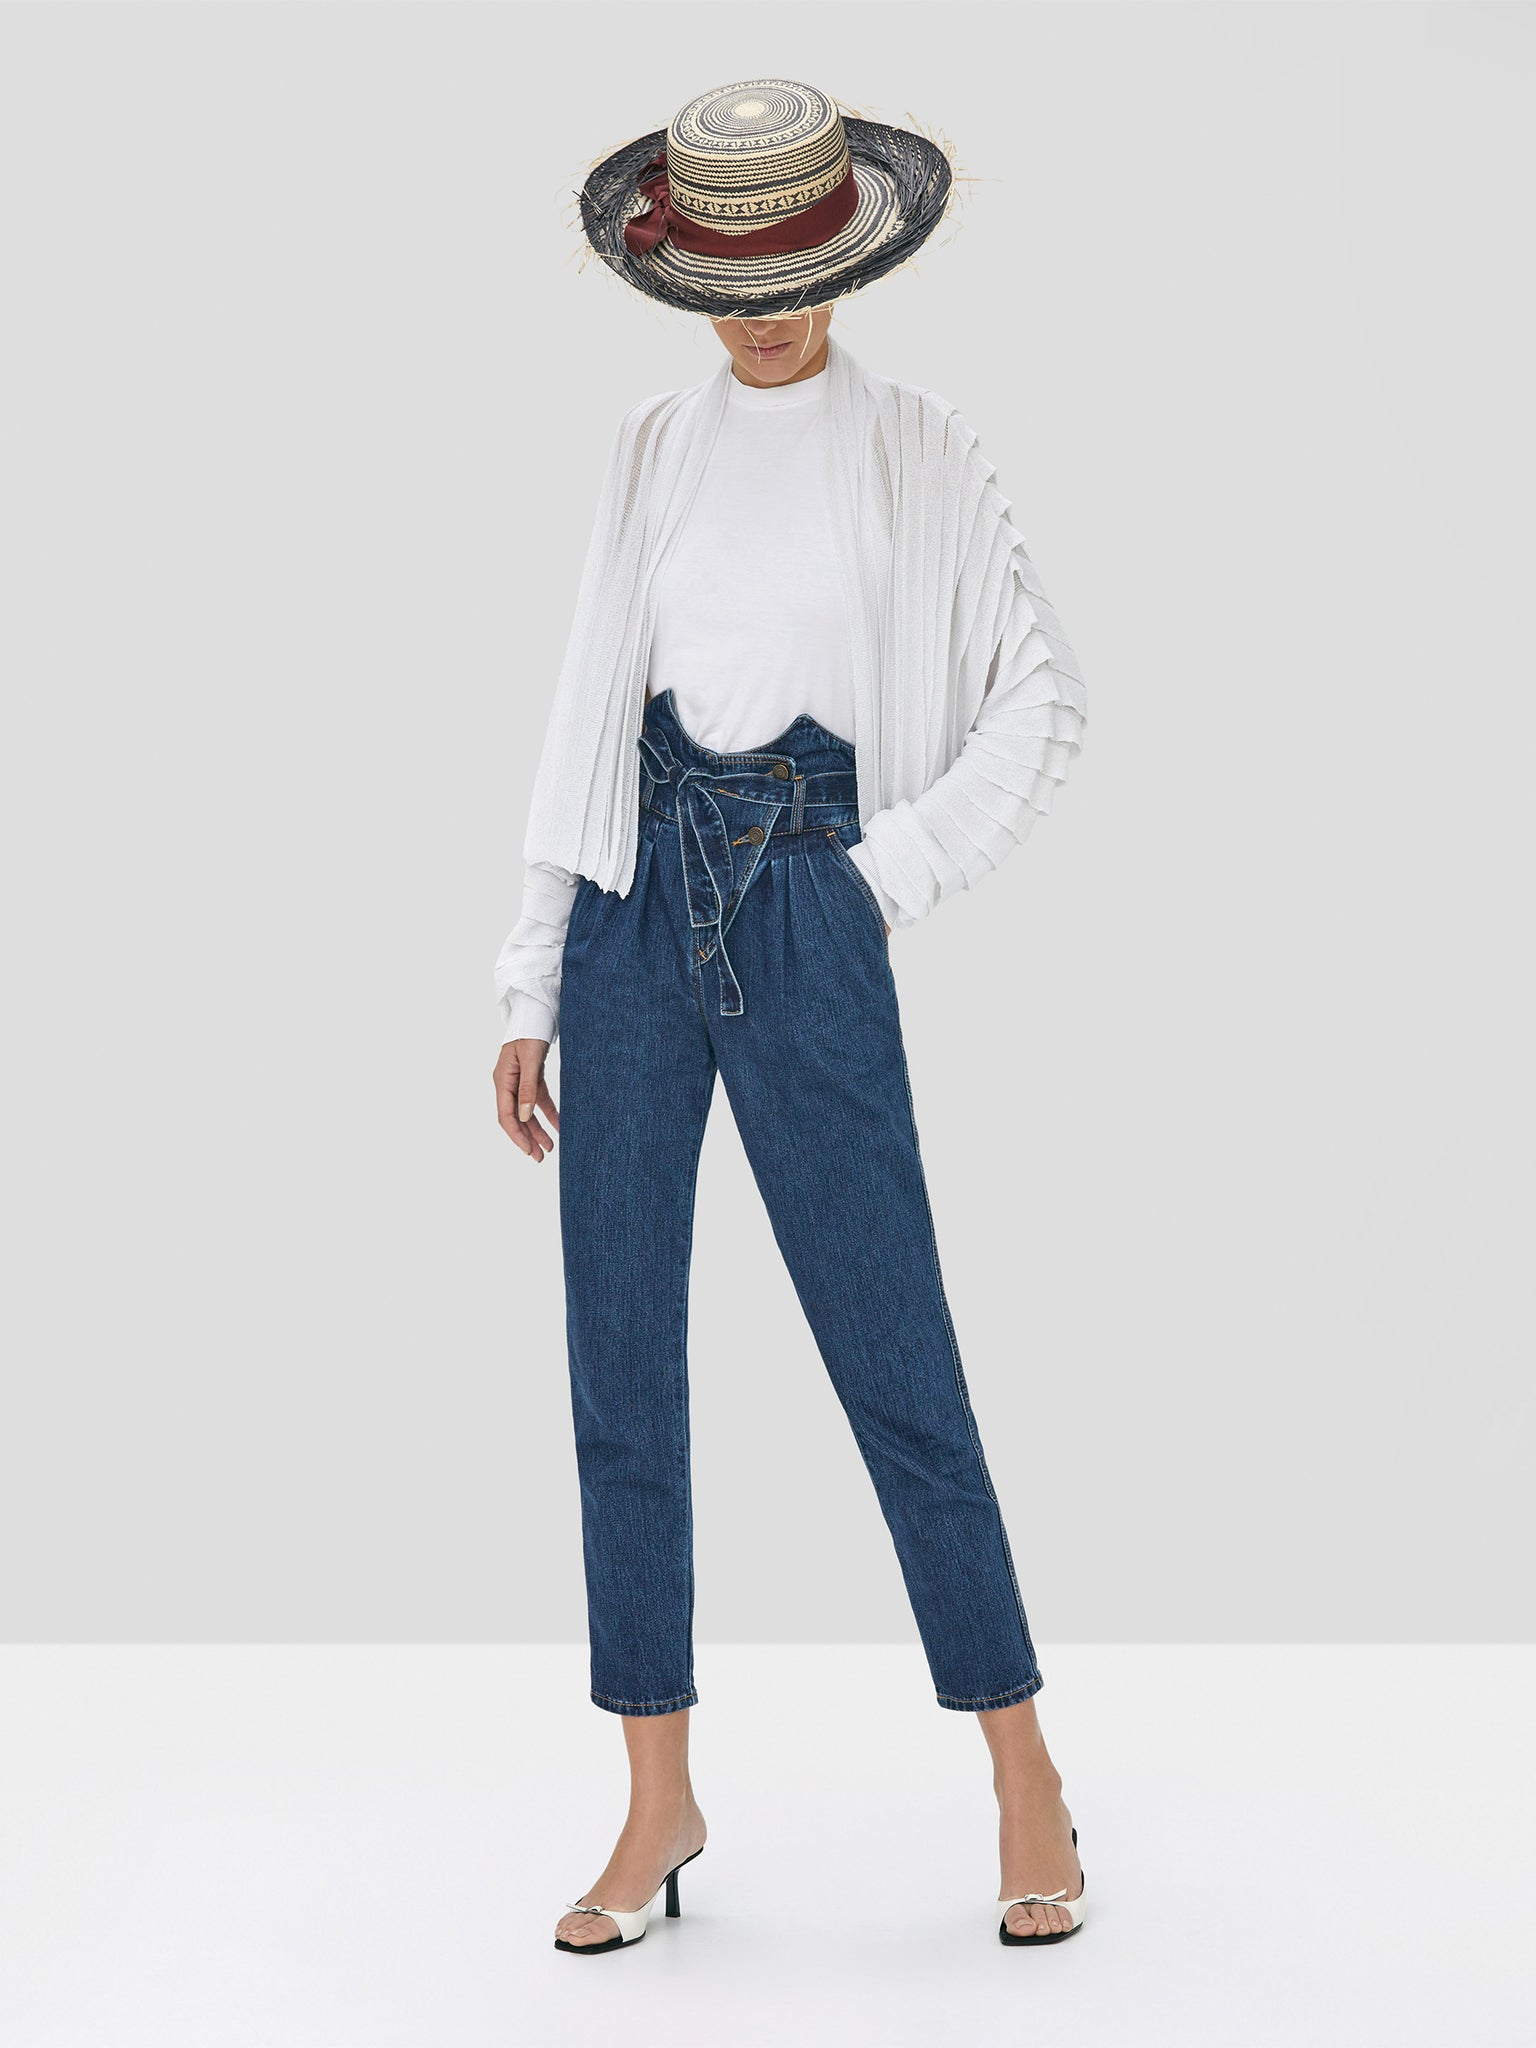 Alexis Oziel Top in White and Stannis Denim Pant in Washed Denim from Spring Summer 2020 Collection